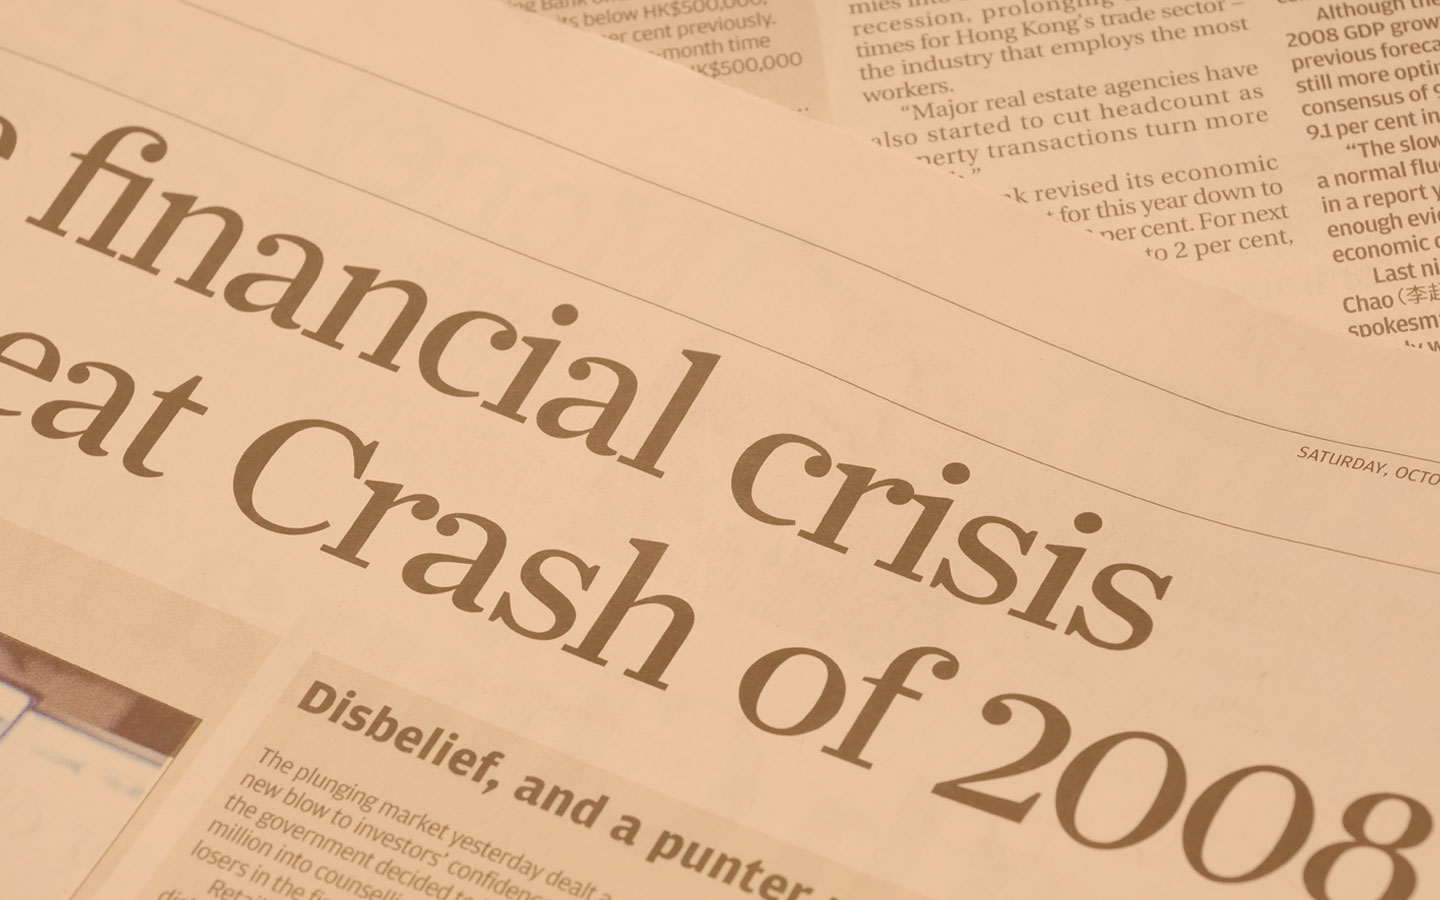 Newspaper article about Financial crash of 2008